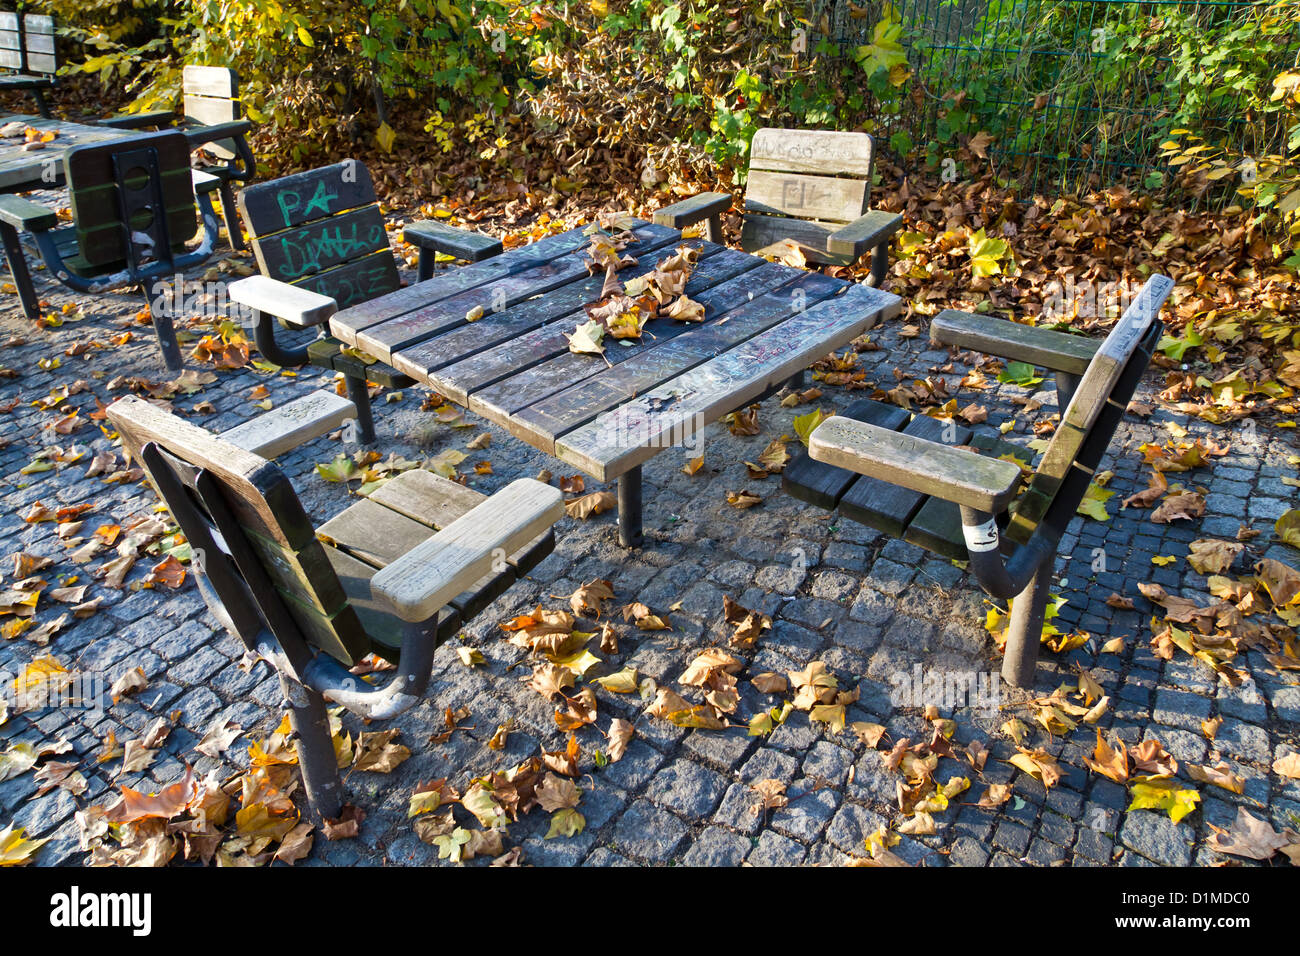 park furniture covered by autumn foliage in the humboldthain park in gesundbrunnen in berlin germany autumn furniture